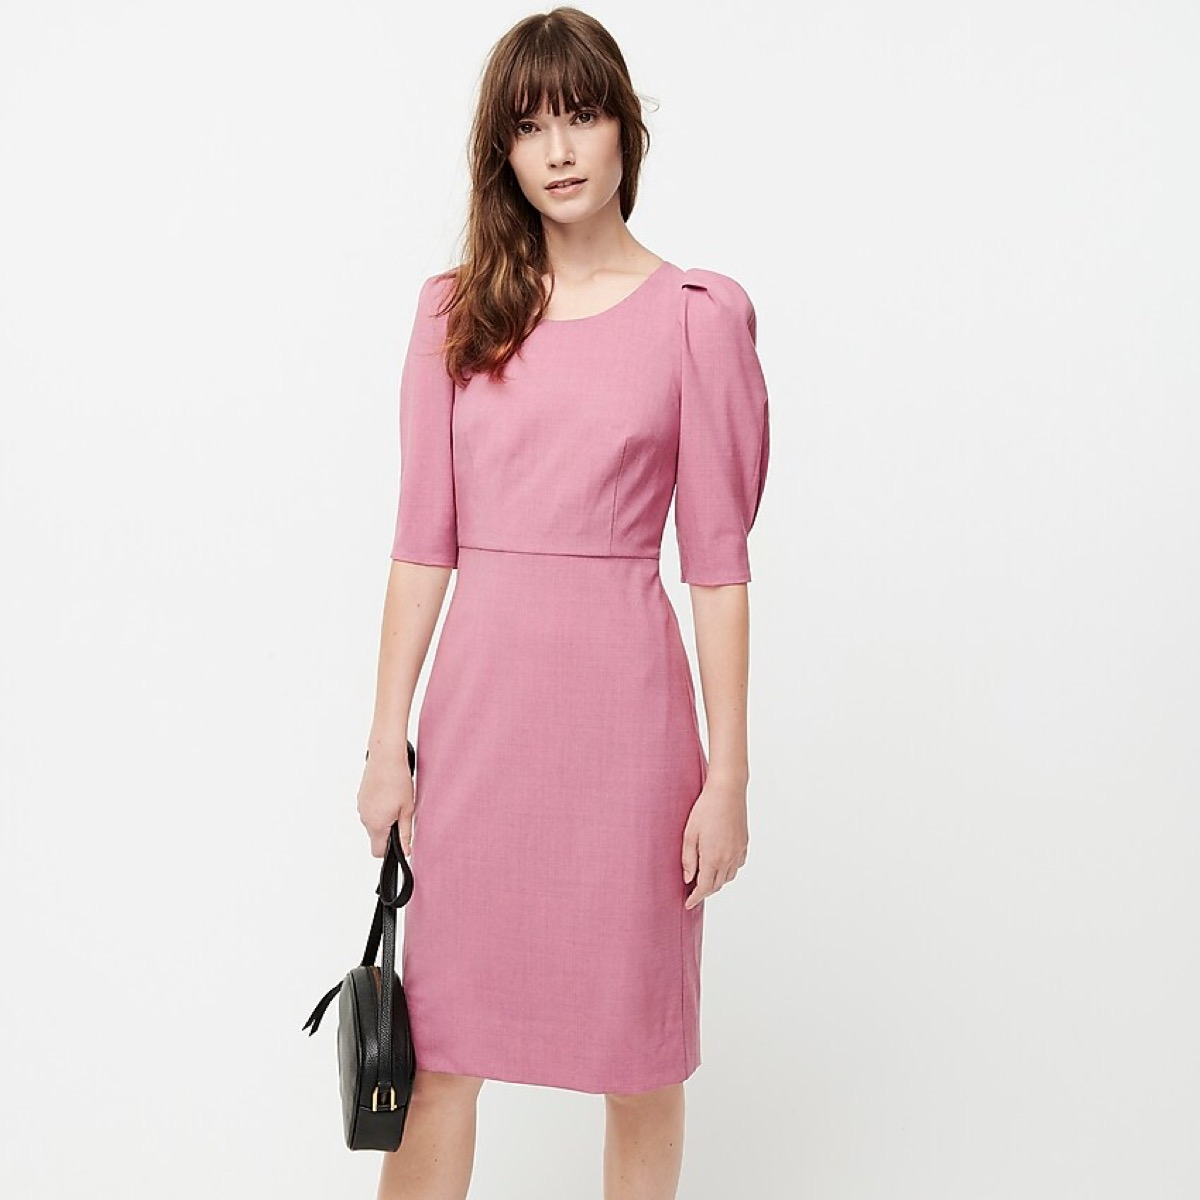 woman in pink puff sleeve dress